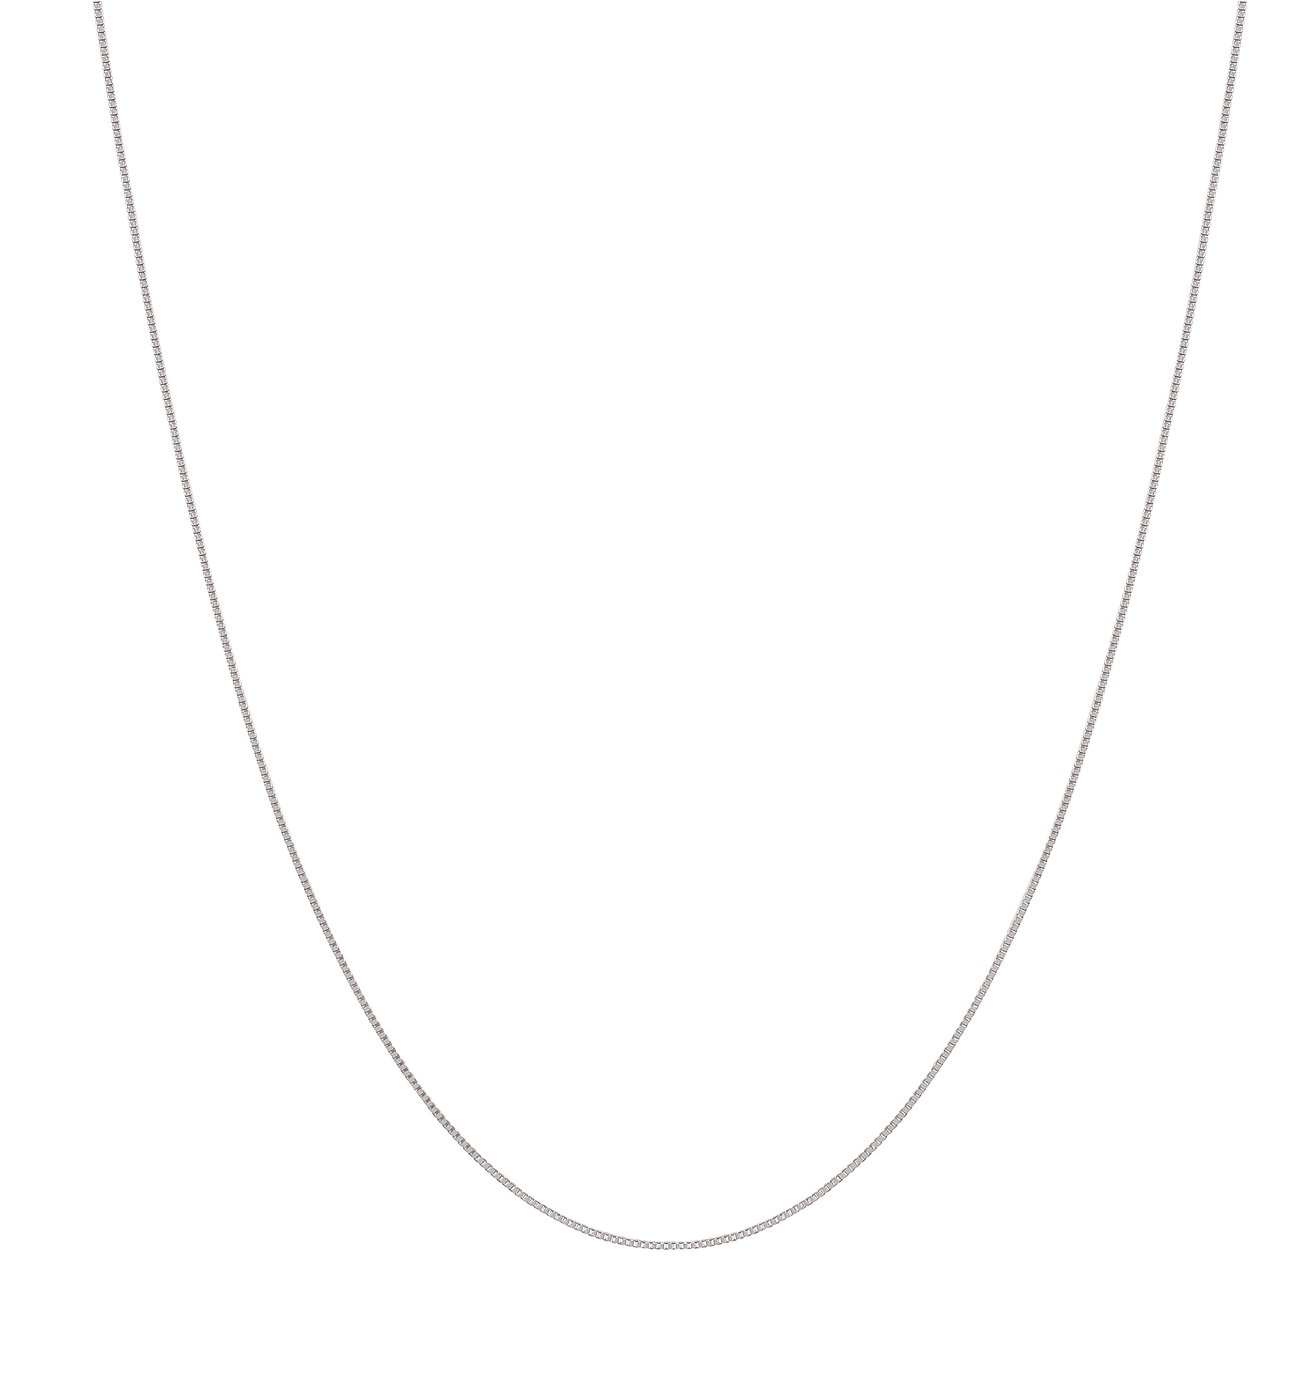 Revere 9ct White Gold Box Chain Necklace